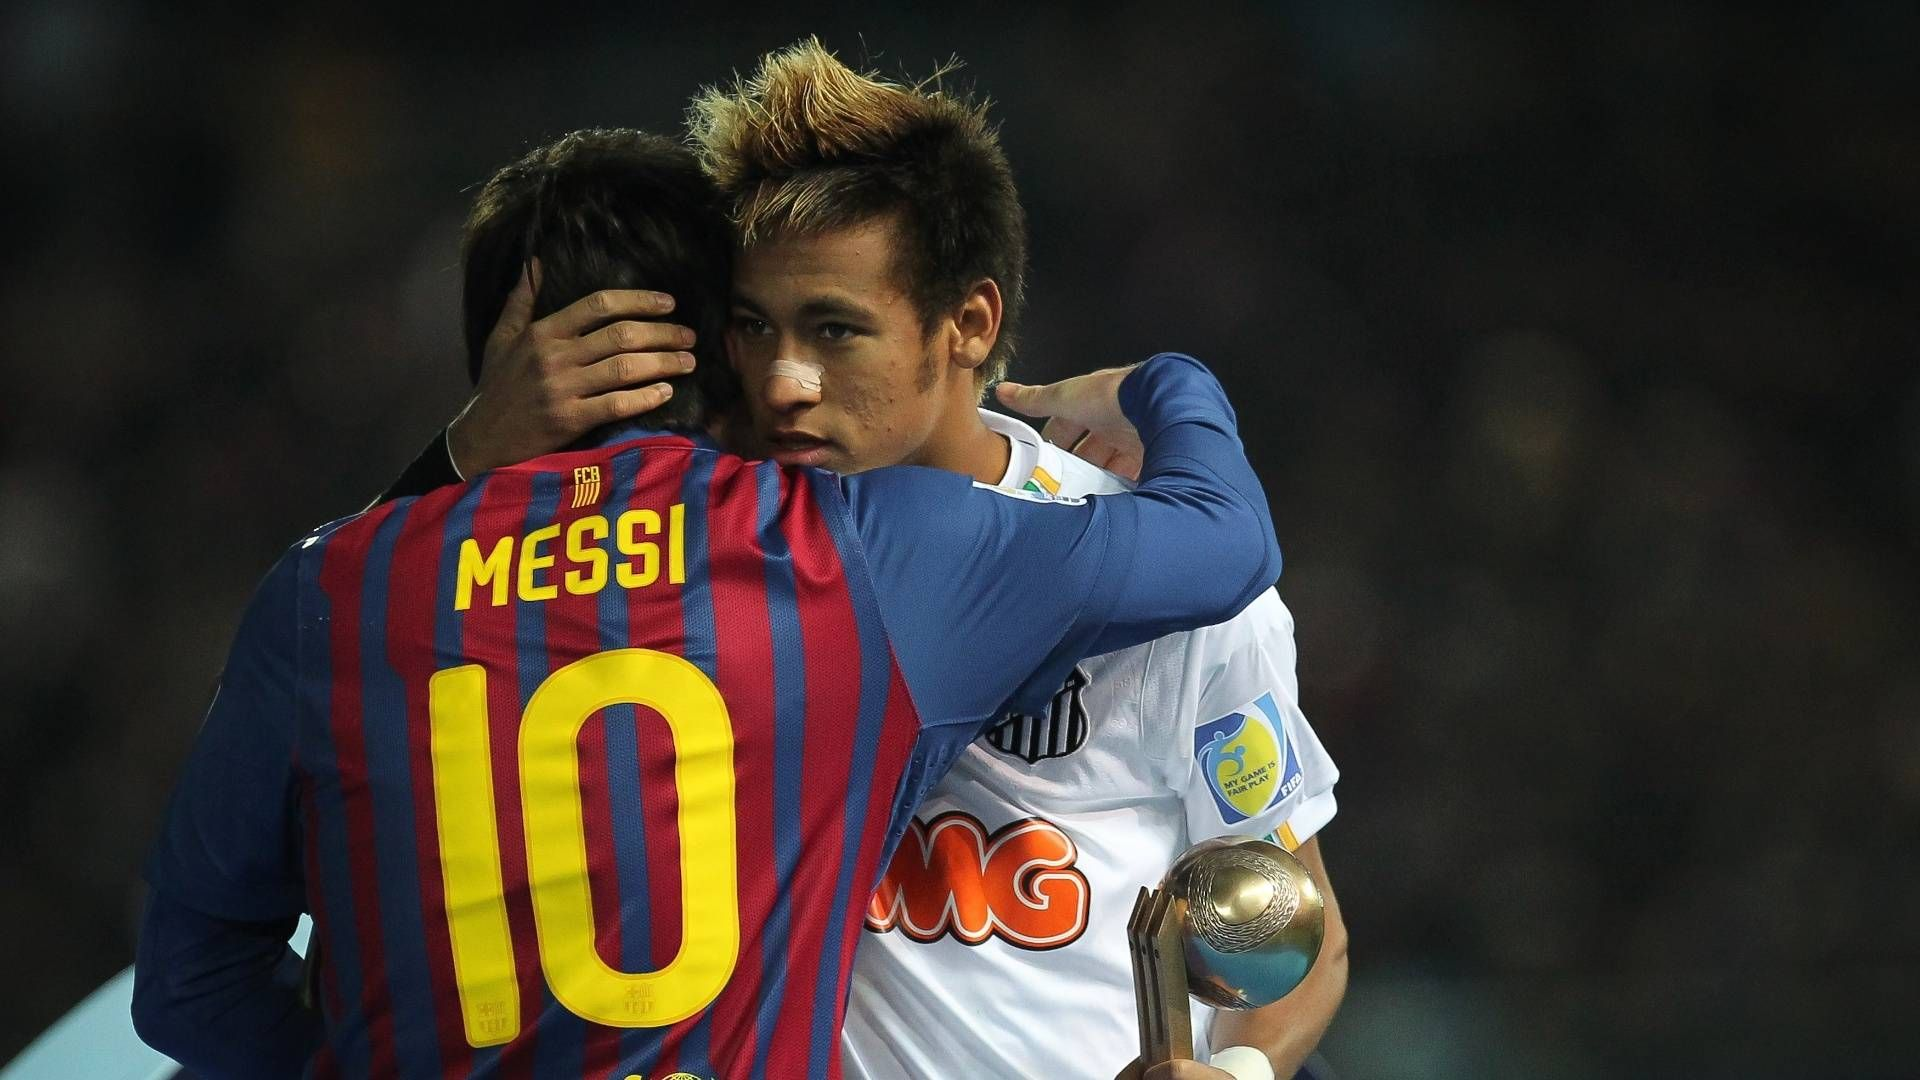 Hd wallpaper neymar - Beautiful Neymar Cool Wallpaper Free Download Hd Wallpapers 1920 1080 Neymar Wallpaper 53 Wallpapers